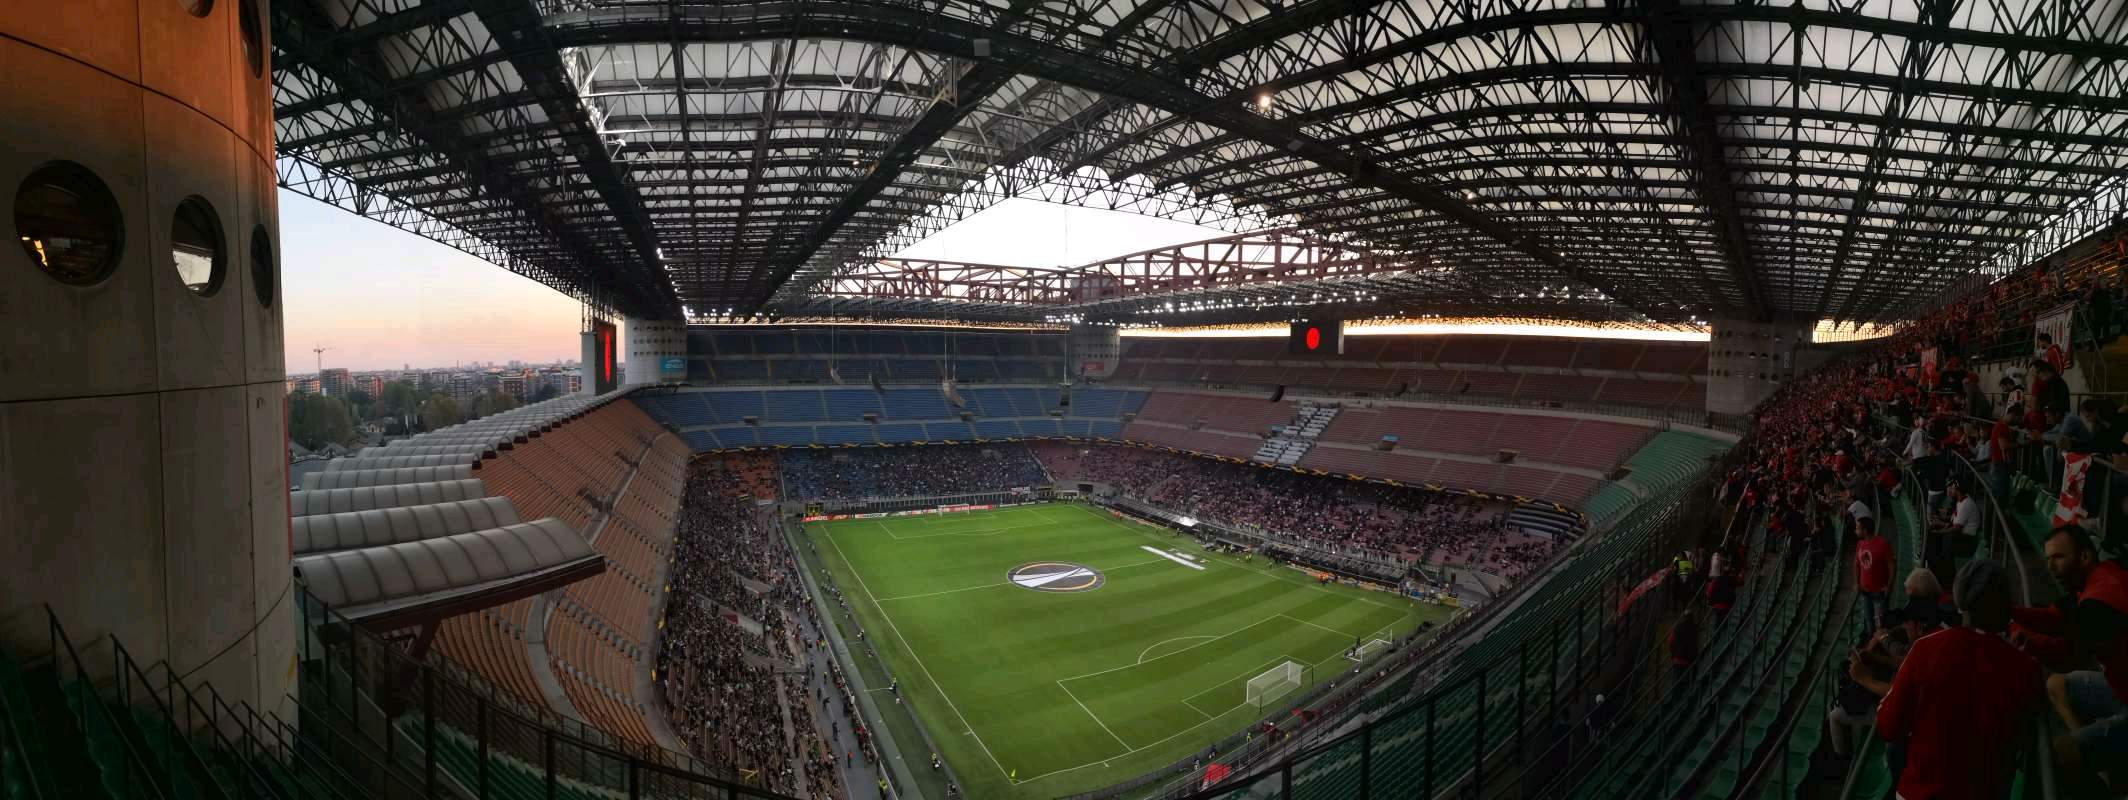 Stadio Giuseppe Meazza section 357 row 11 seat 5 - AC ...